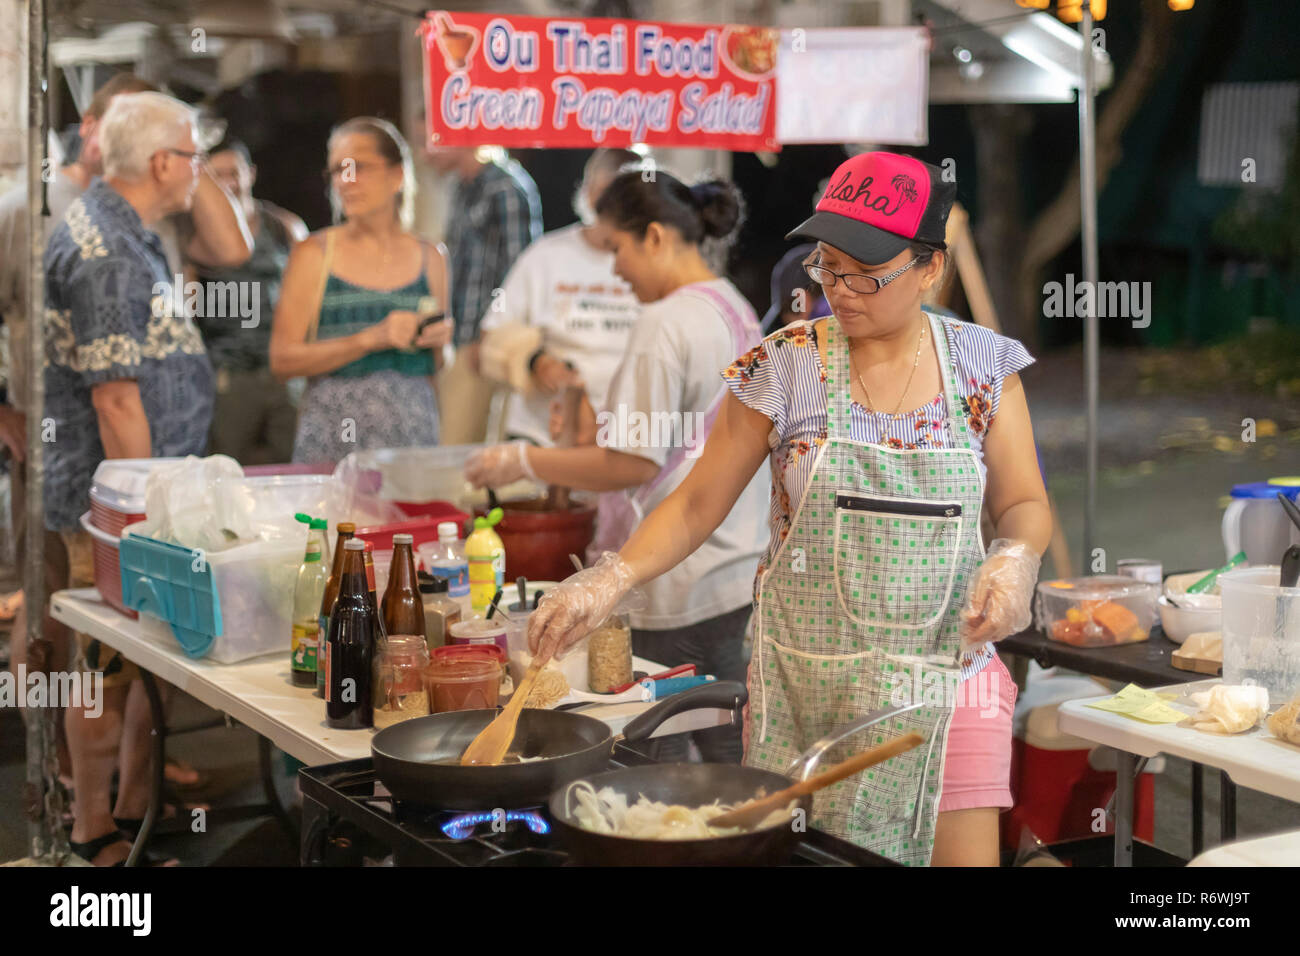 Kalapana, Hawaii - Hundreds attend the Kalapana Night Market every Wednesday for music, dancing, food, and crafts. The event was begun by the late Unc - Stock Image